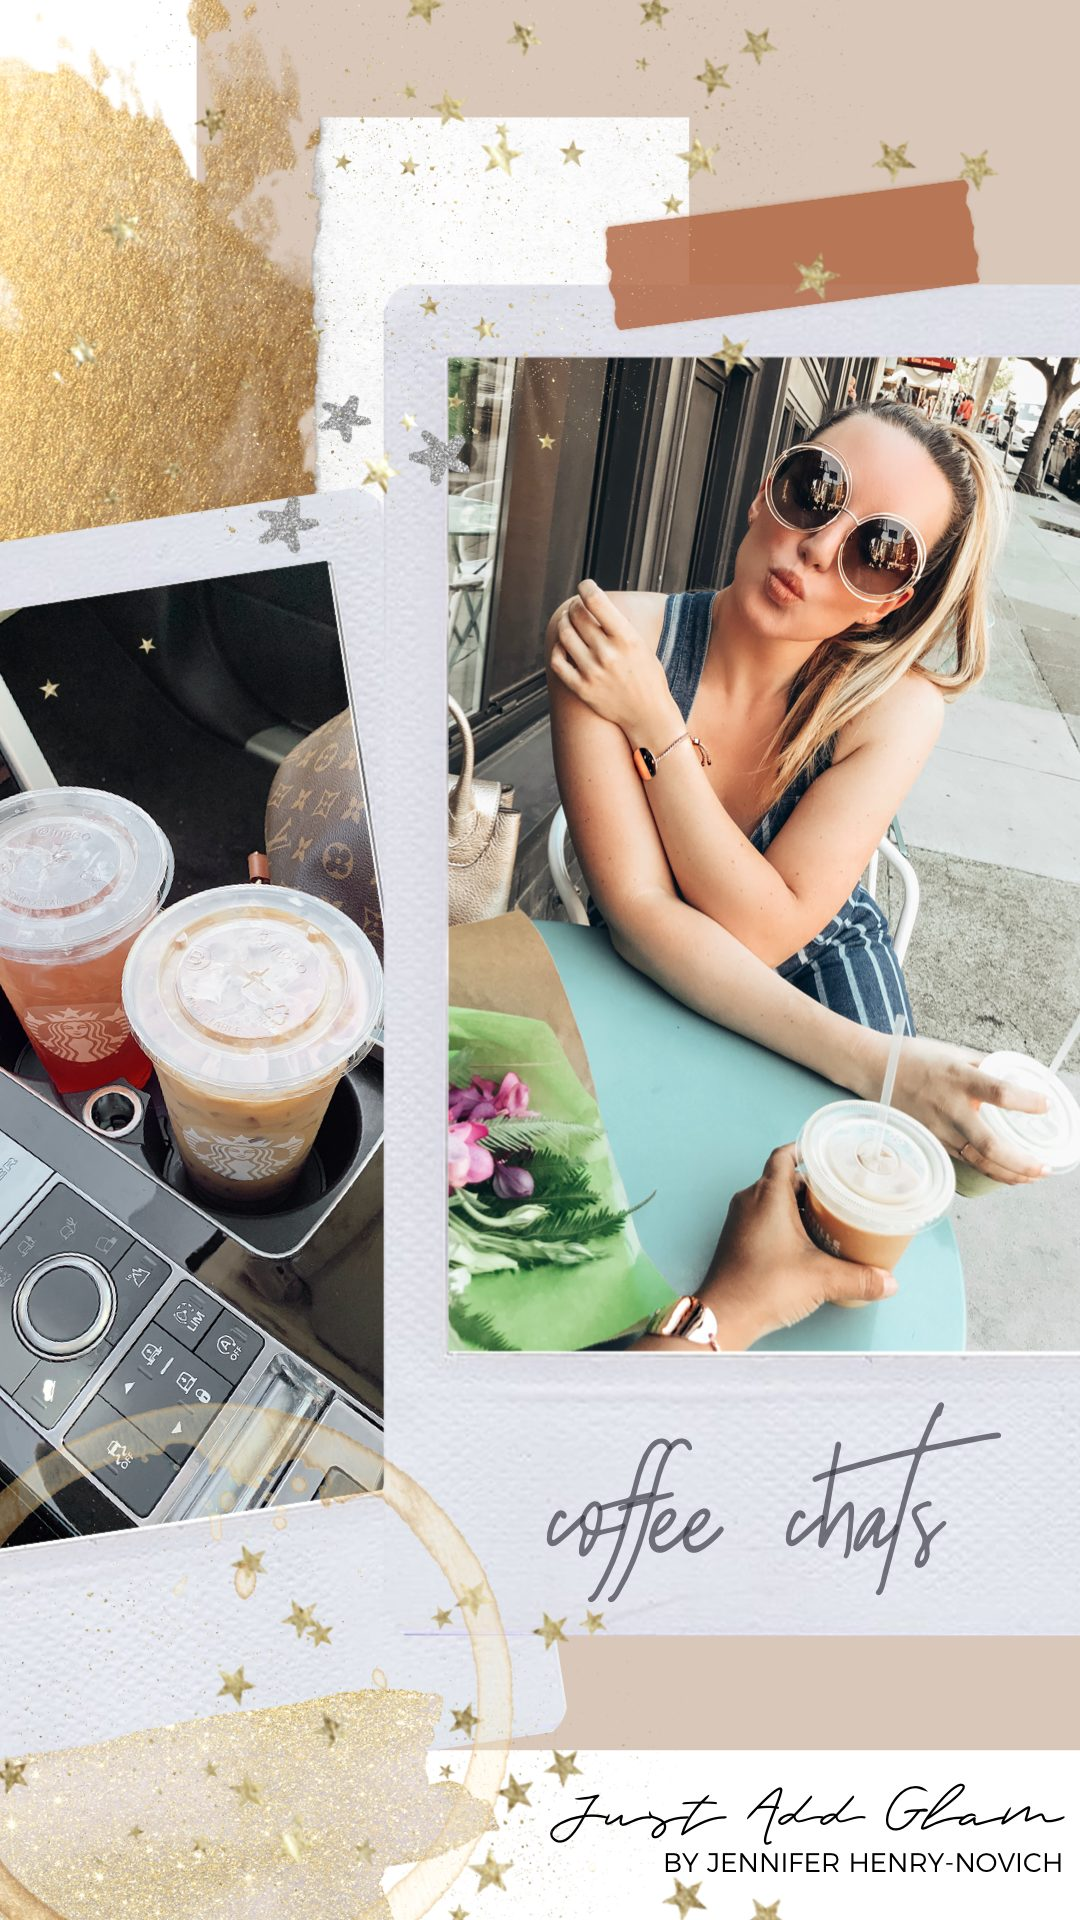 Personal Questions by popular San Francisco lifestyle blog, Just Add Glam: image of some polaroid pictures of a woman sitting down and drinking coffee.